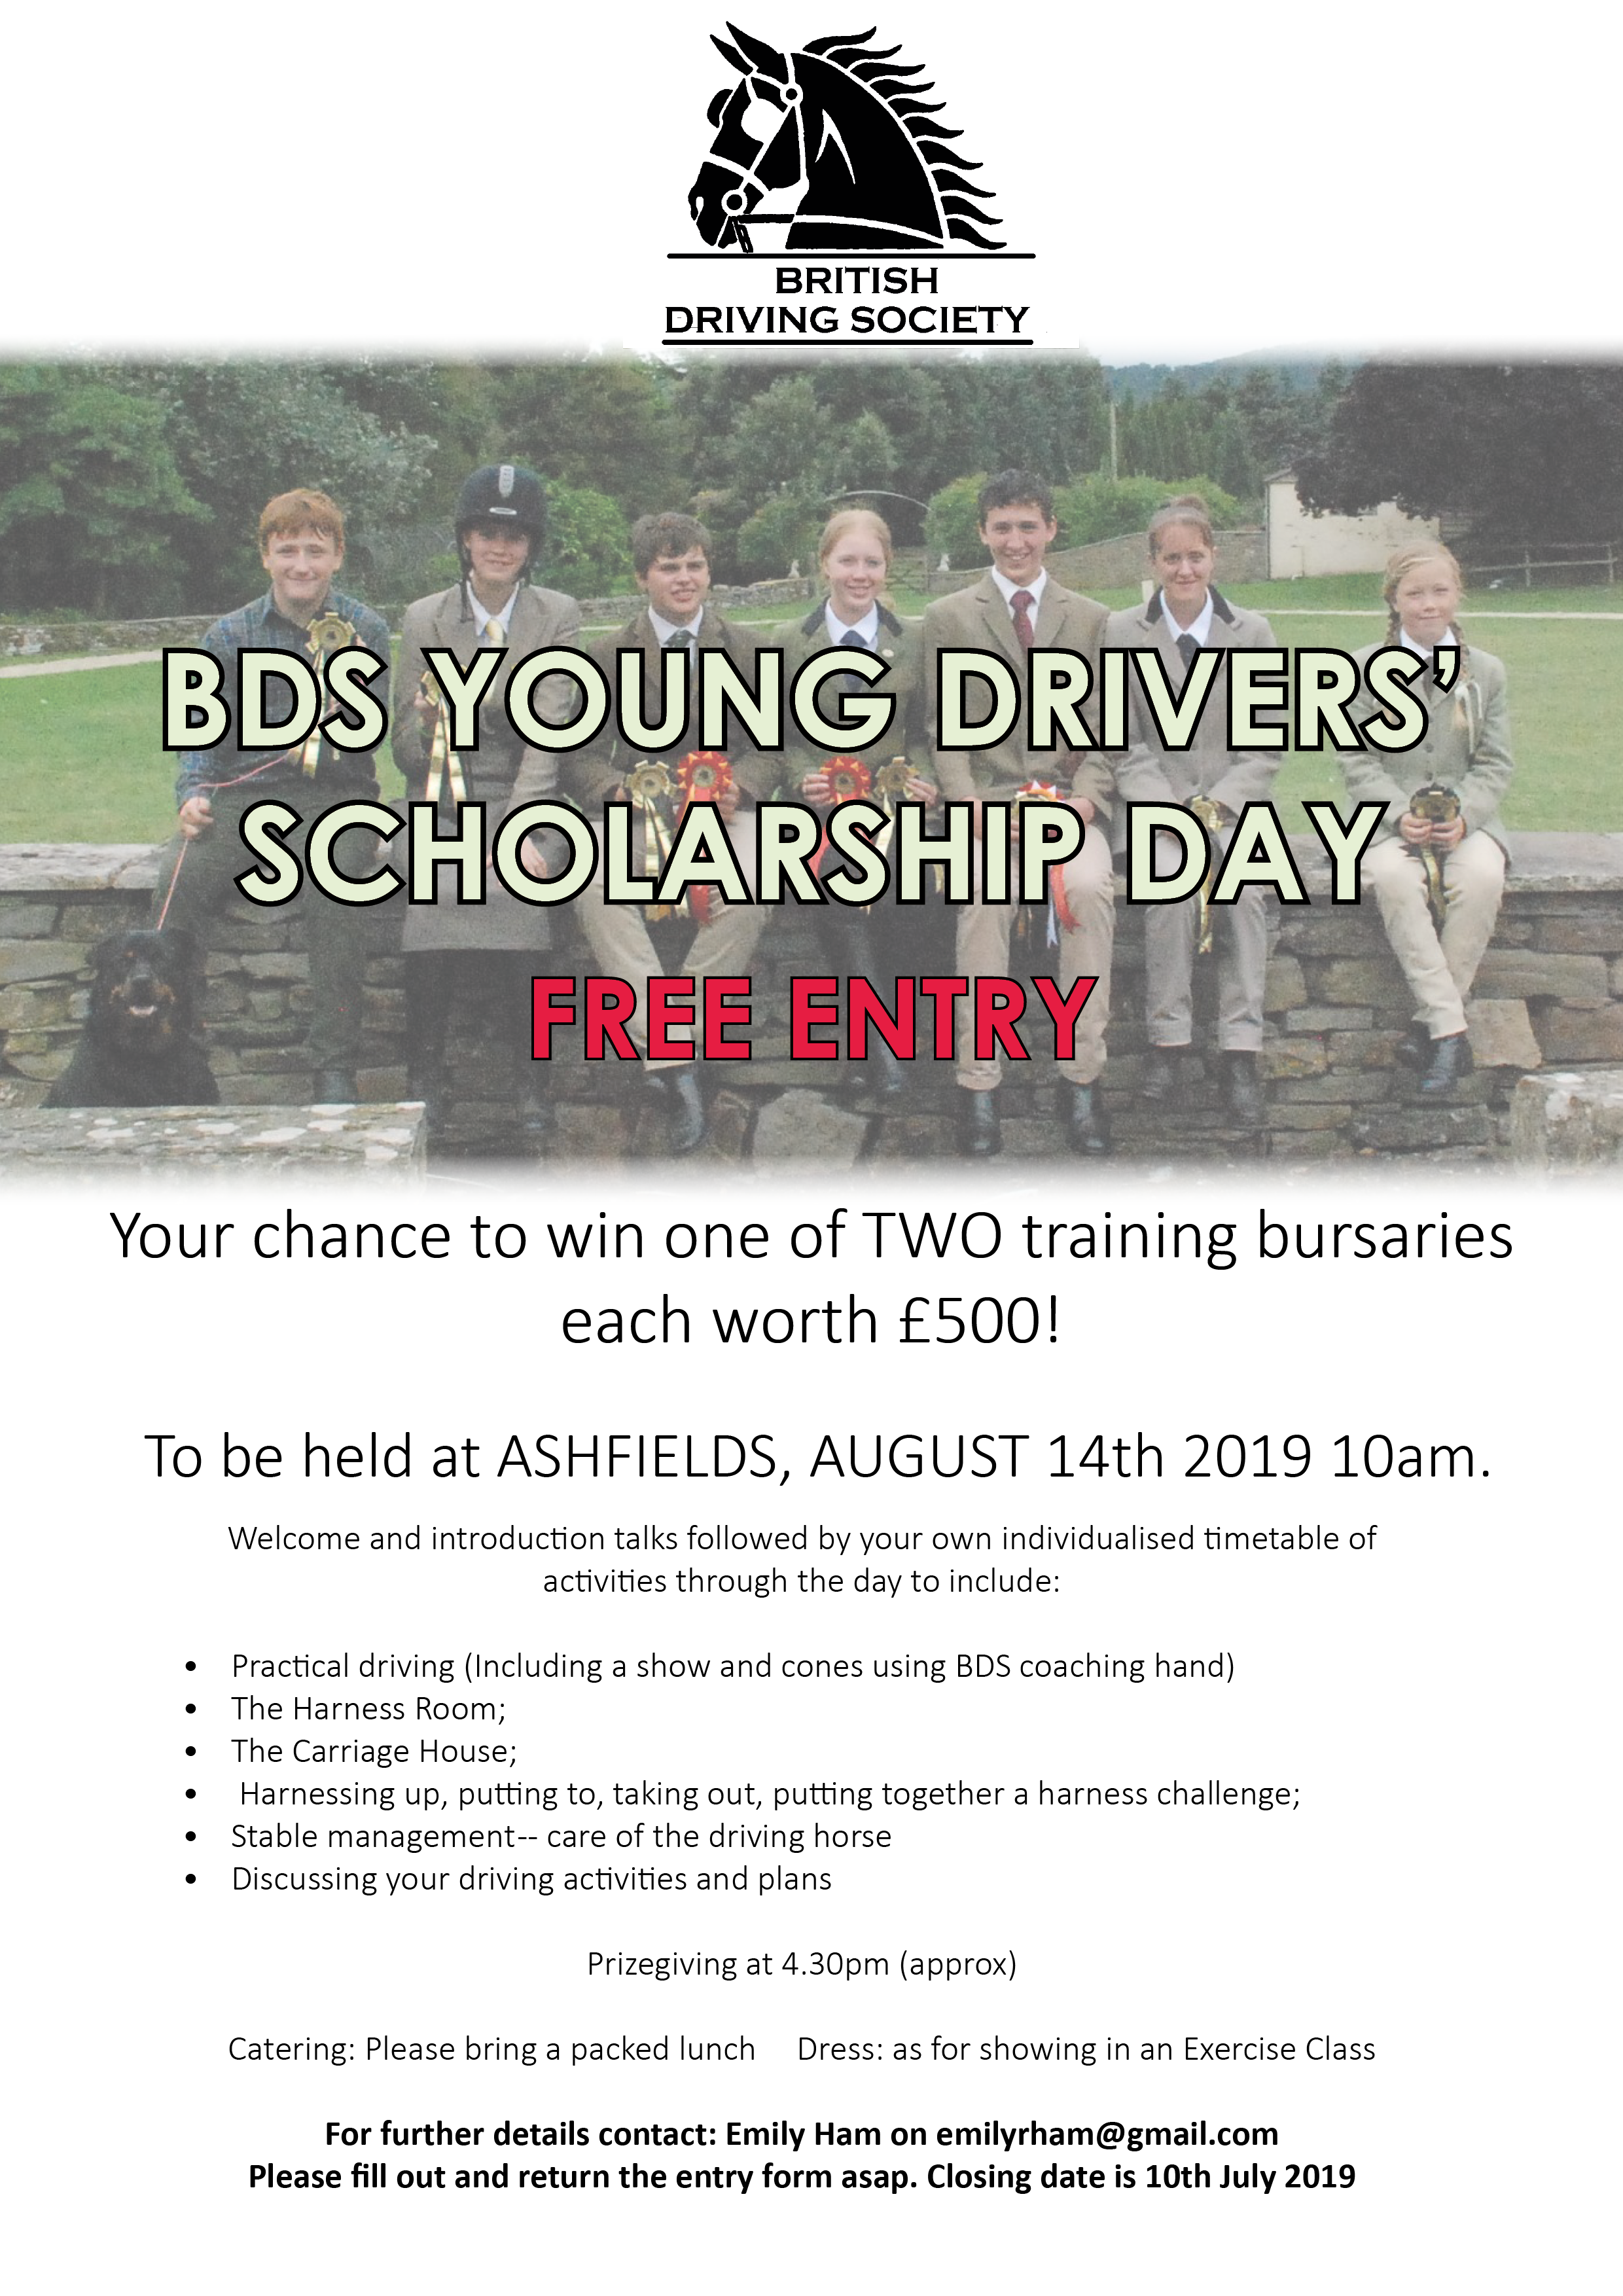 The Brian Sims BDS Young Drivers Scholarship 2019 - British